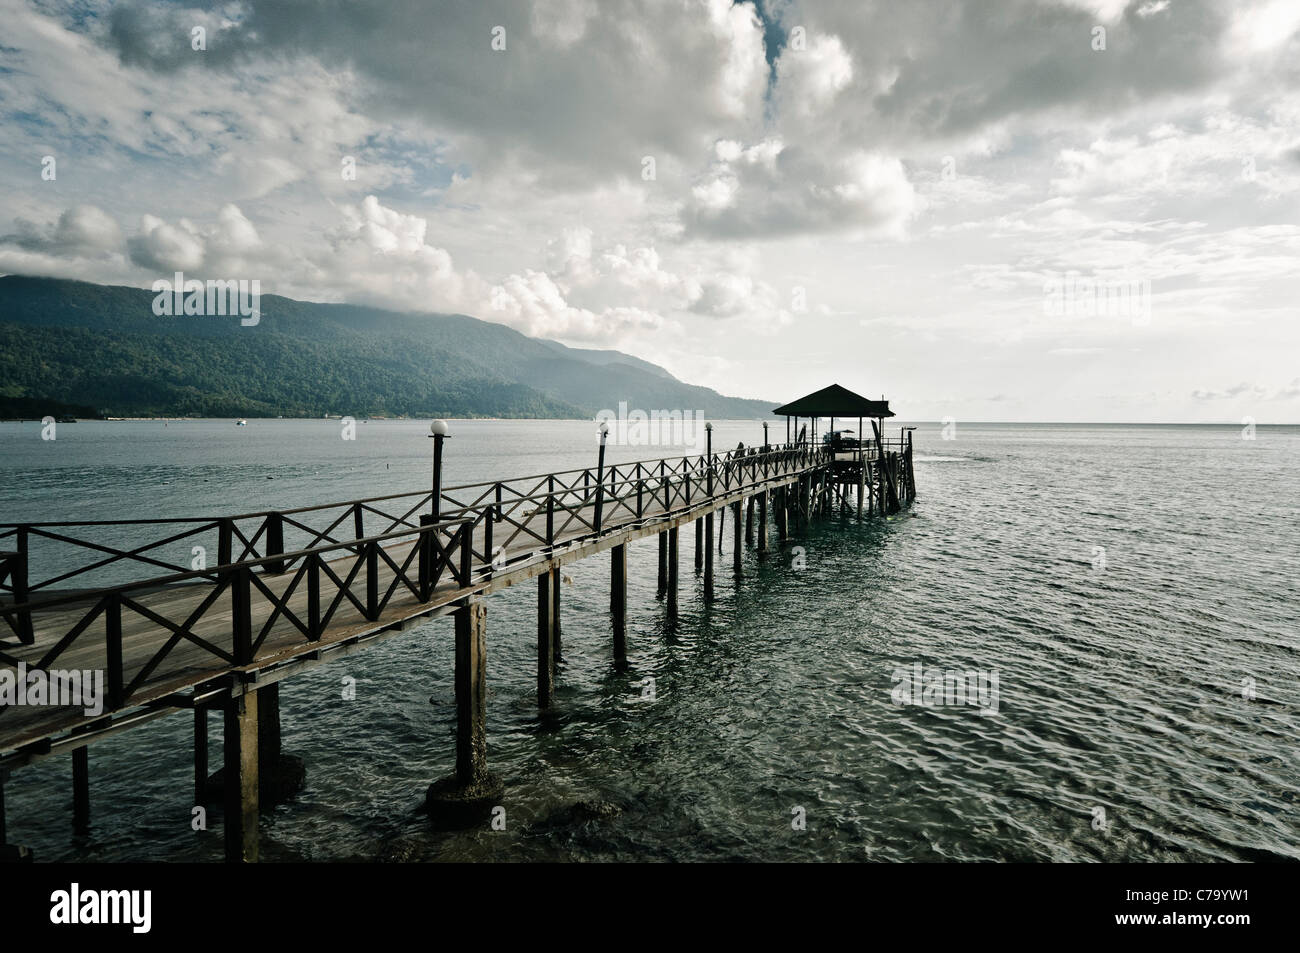 Pier of the Panuba Inn Resort on the beach of Panuba, Pulau Tioman Island, Malaysia, Southeast Asia, Asia Stock Photo